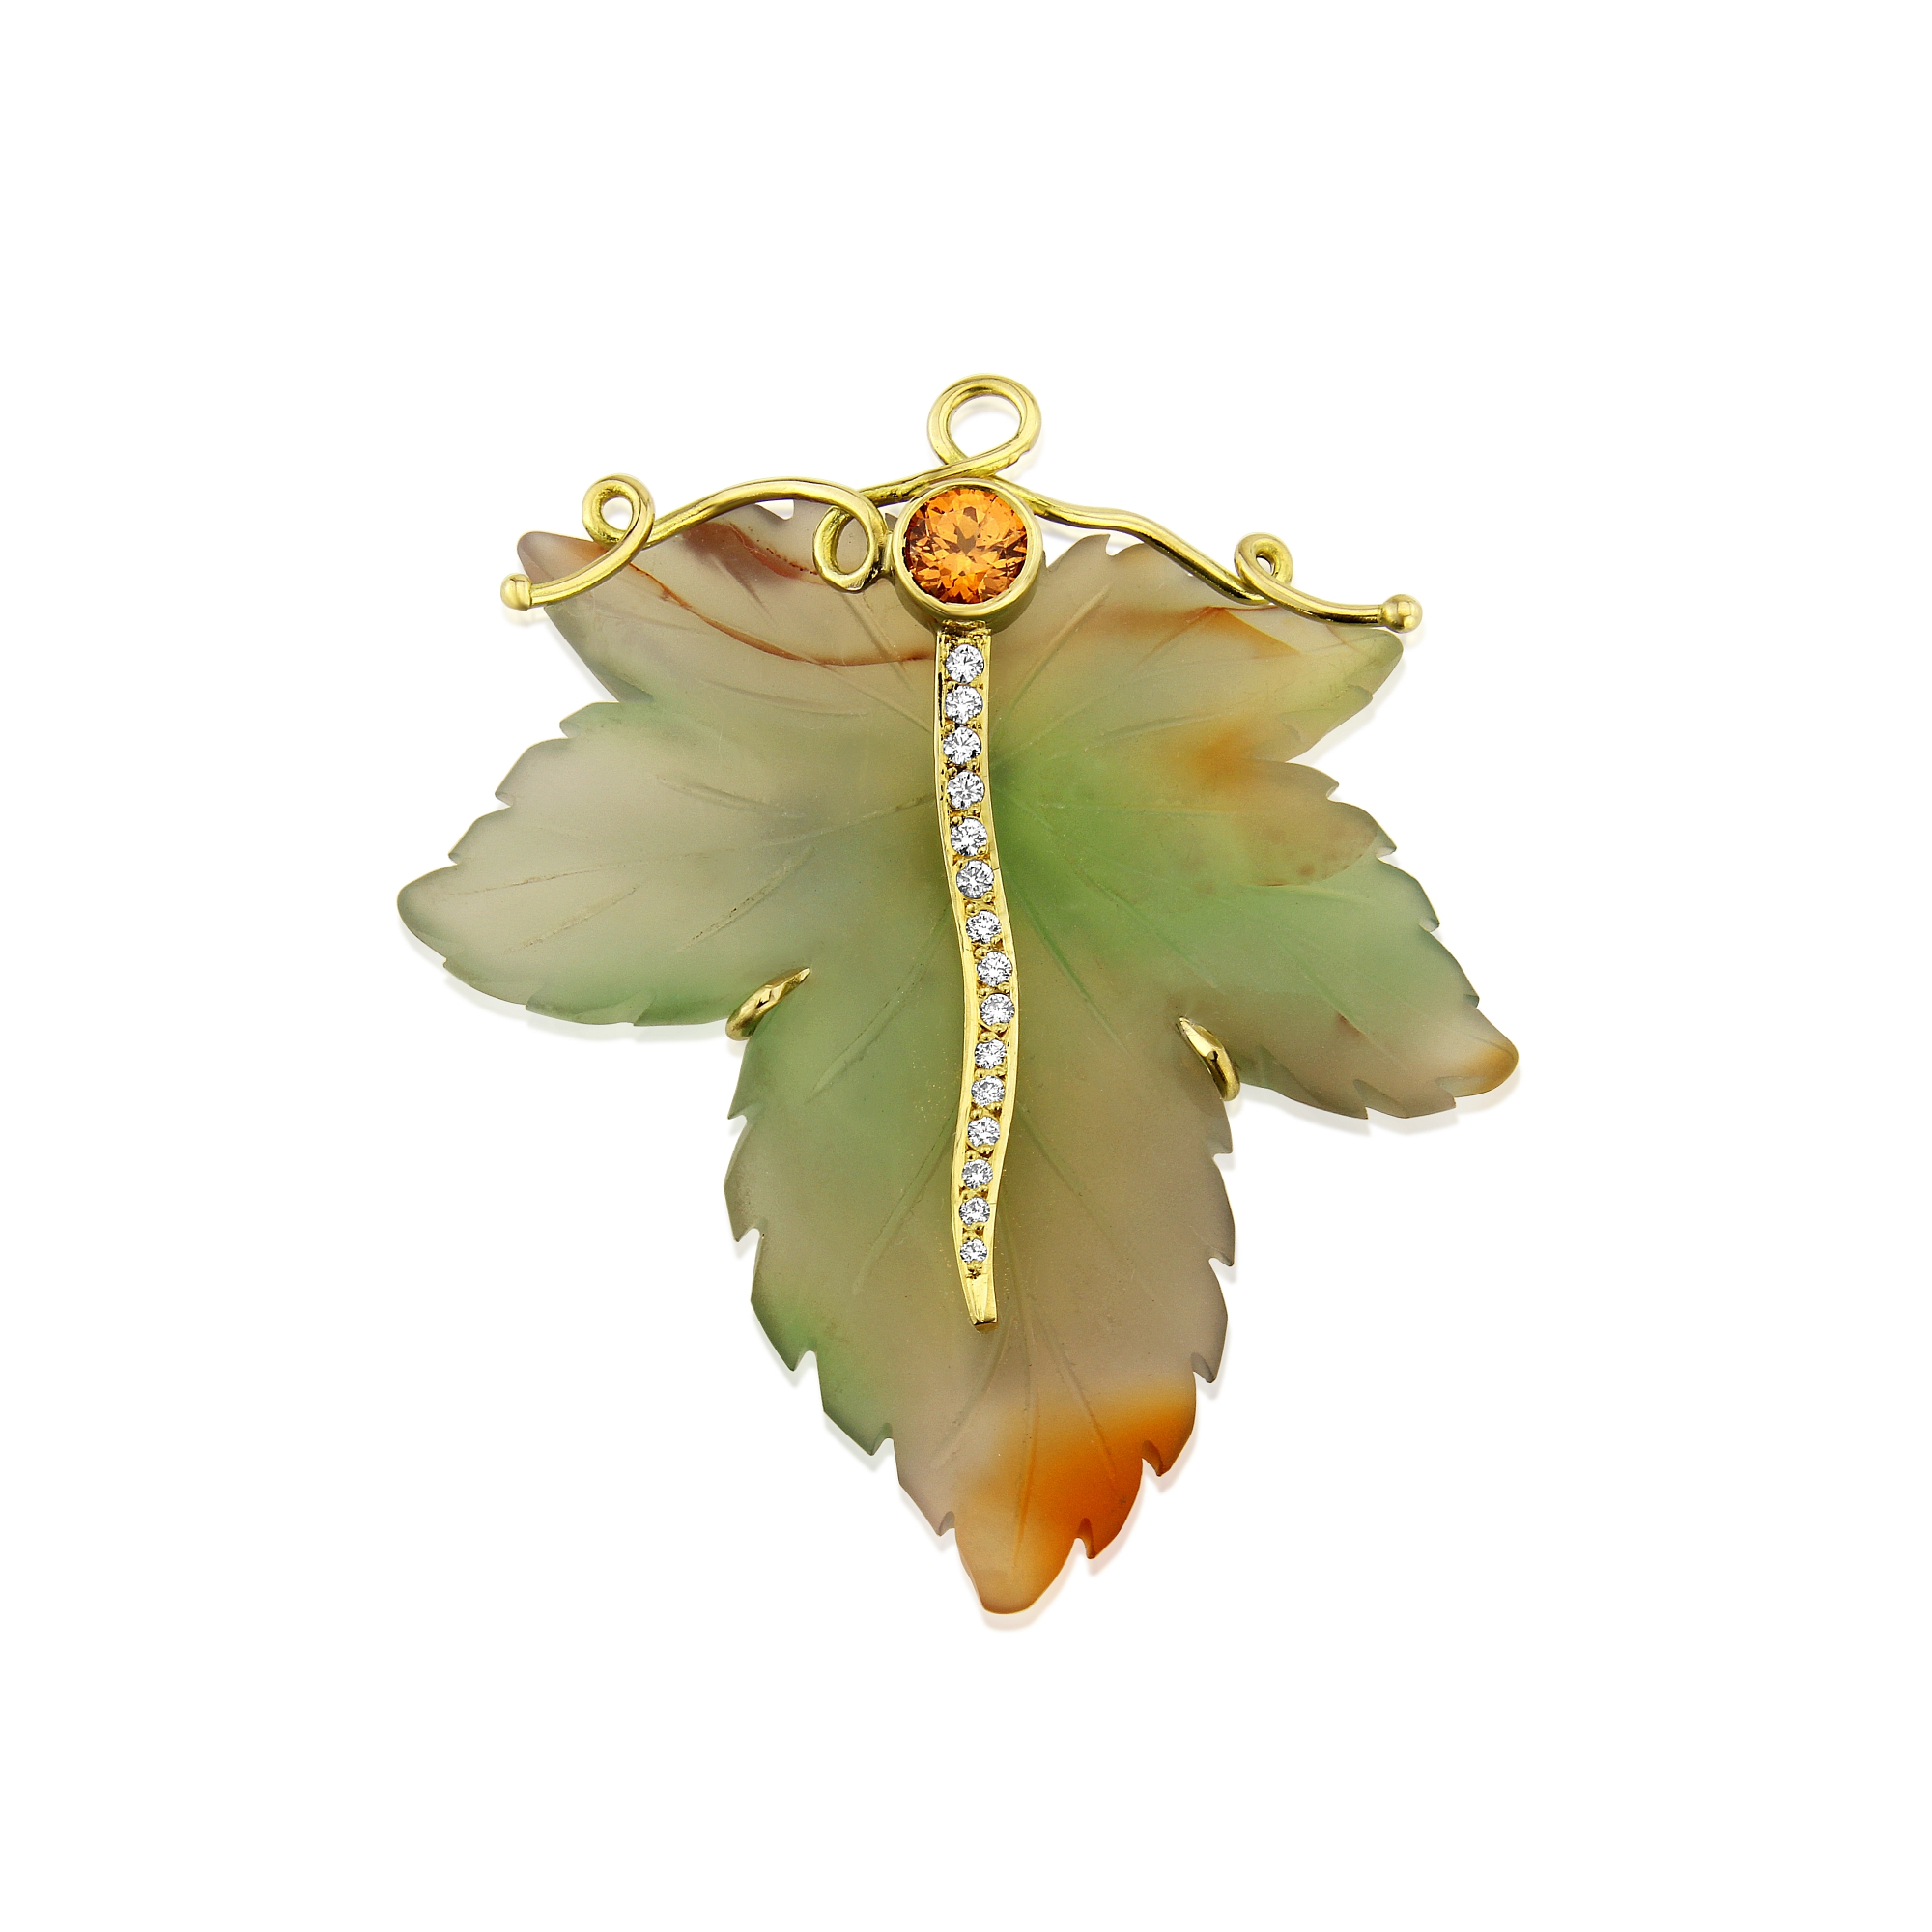 Top quality carved Agate leaf brooch hand made in 18ct Gold and set with diamonds and an orange Sapphire.